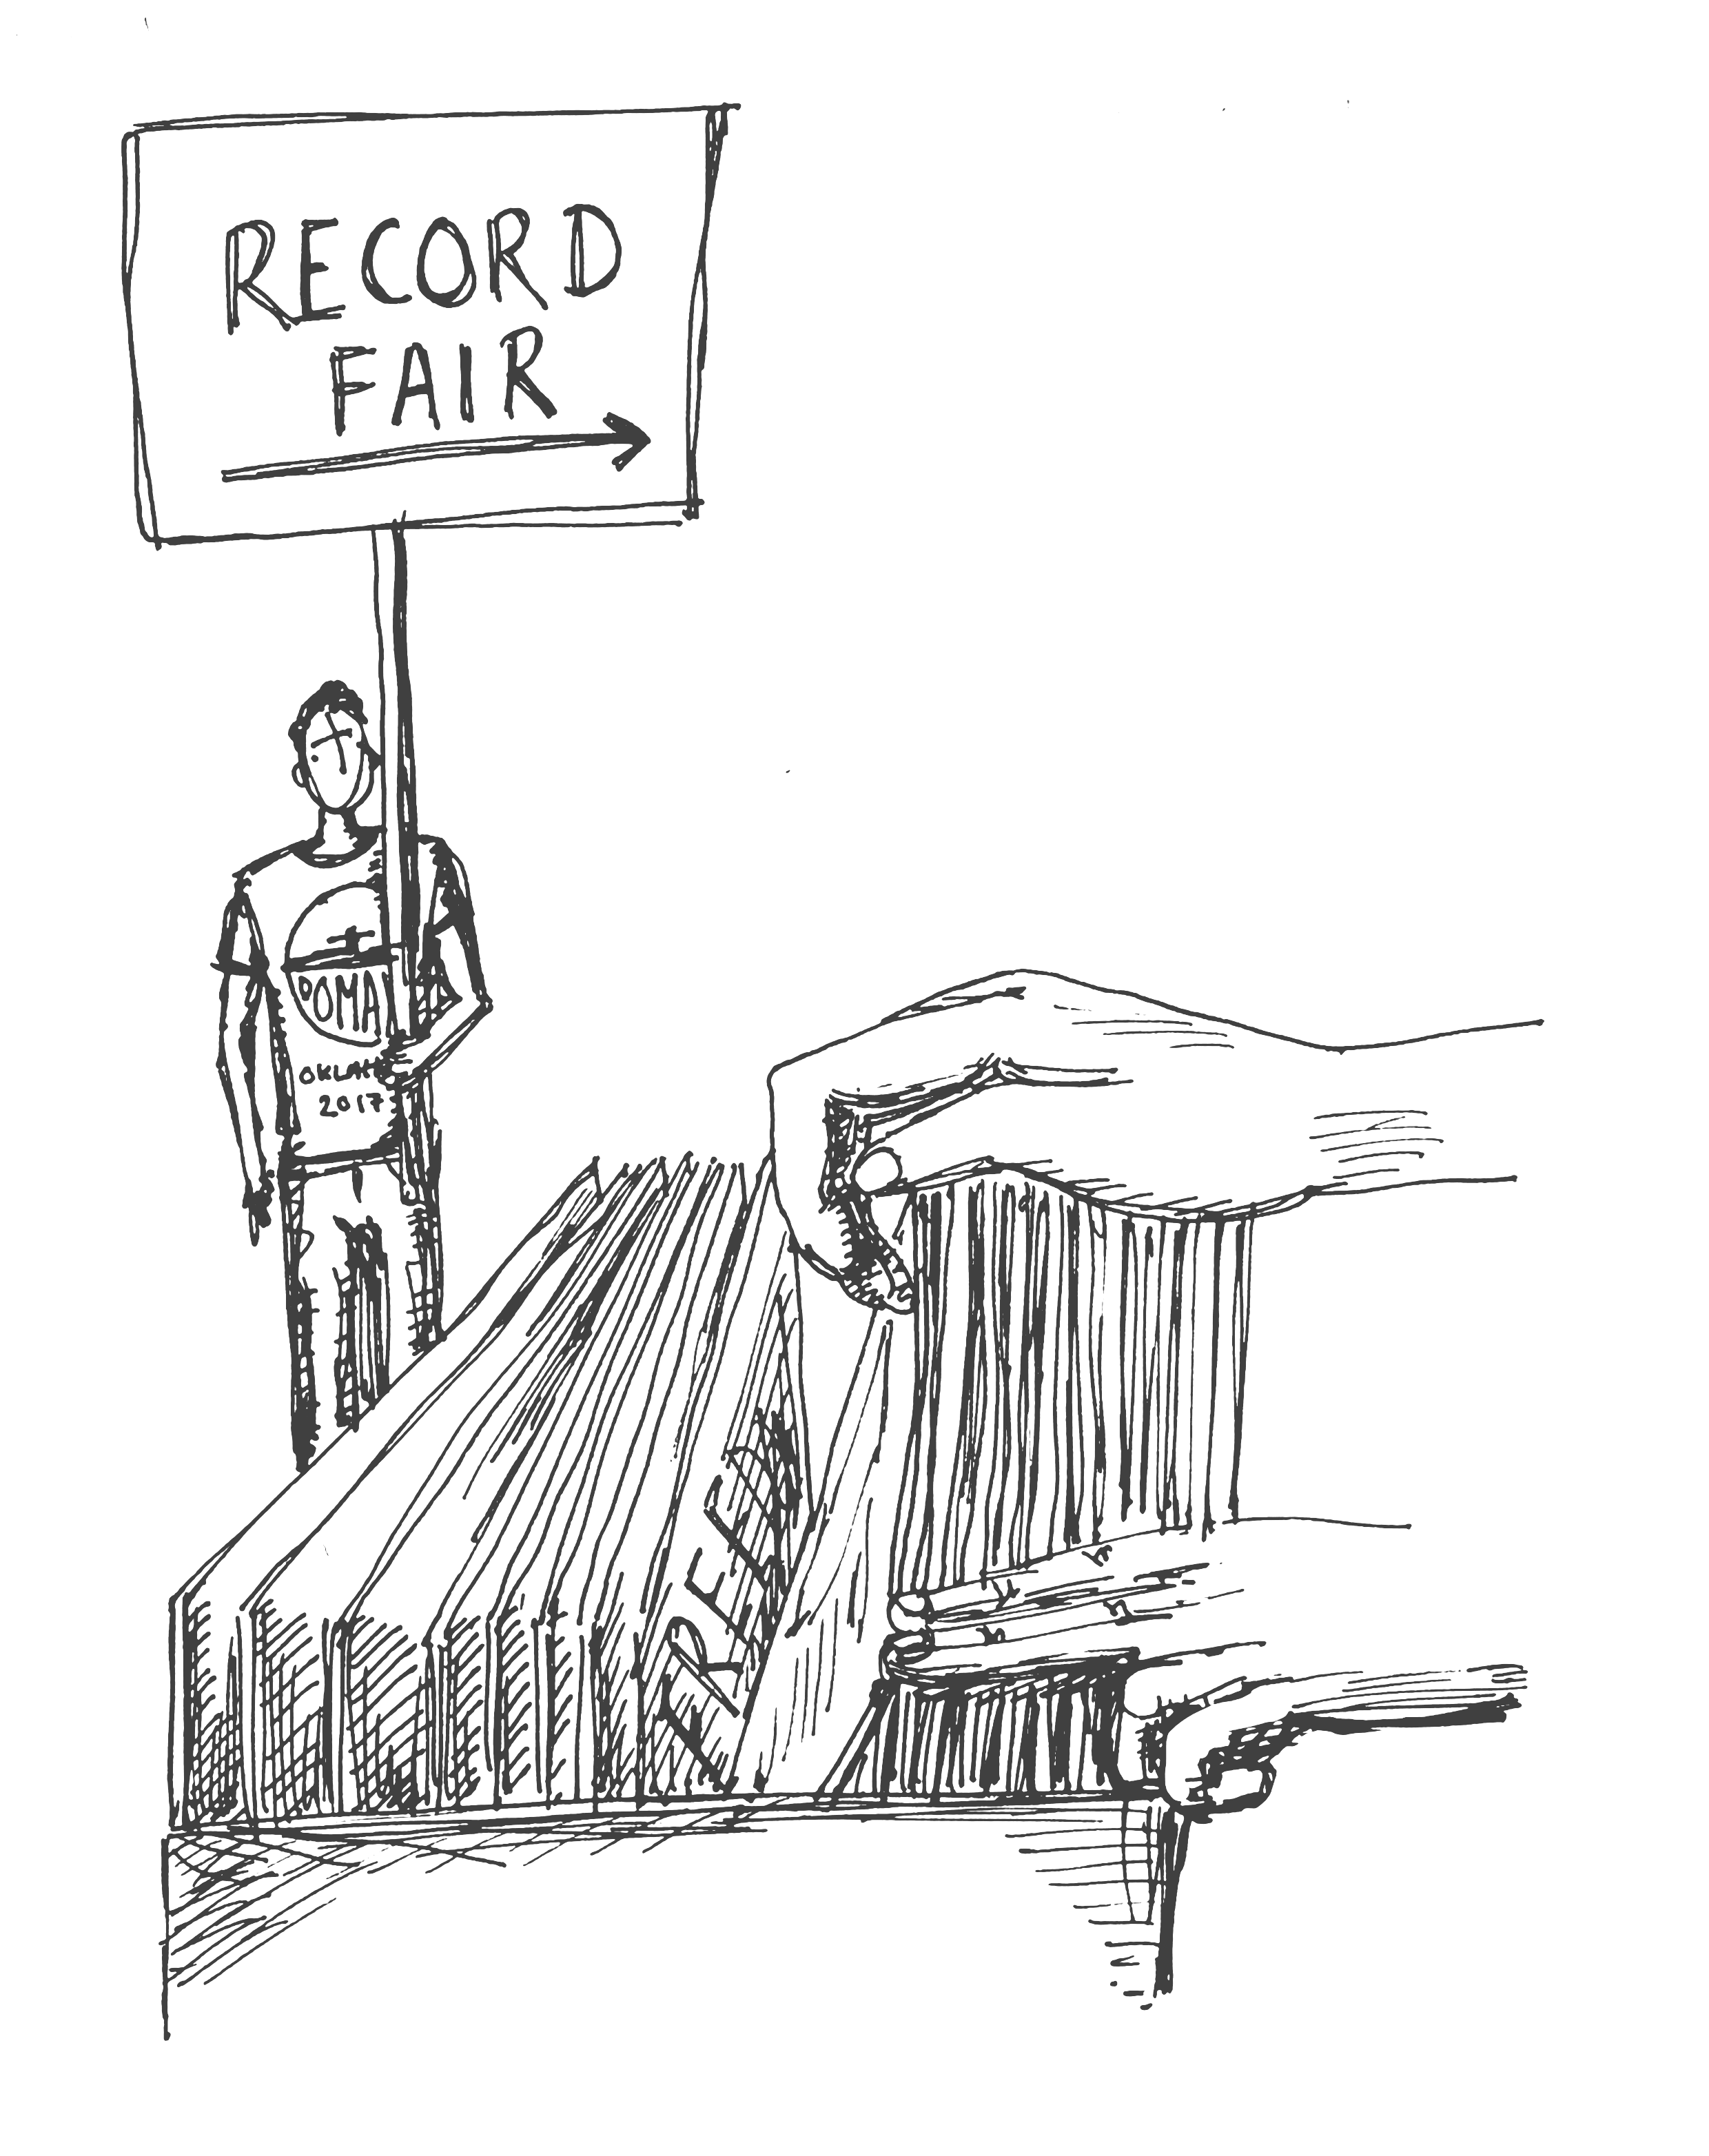 The Record Fair